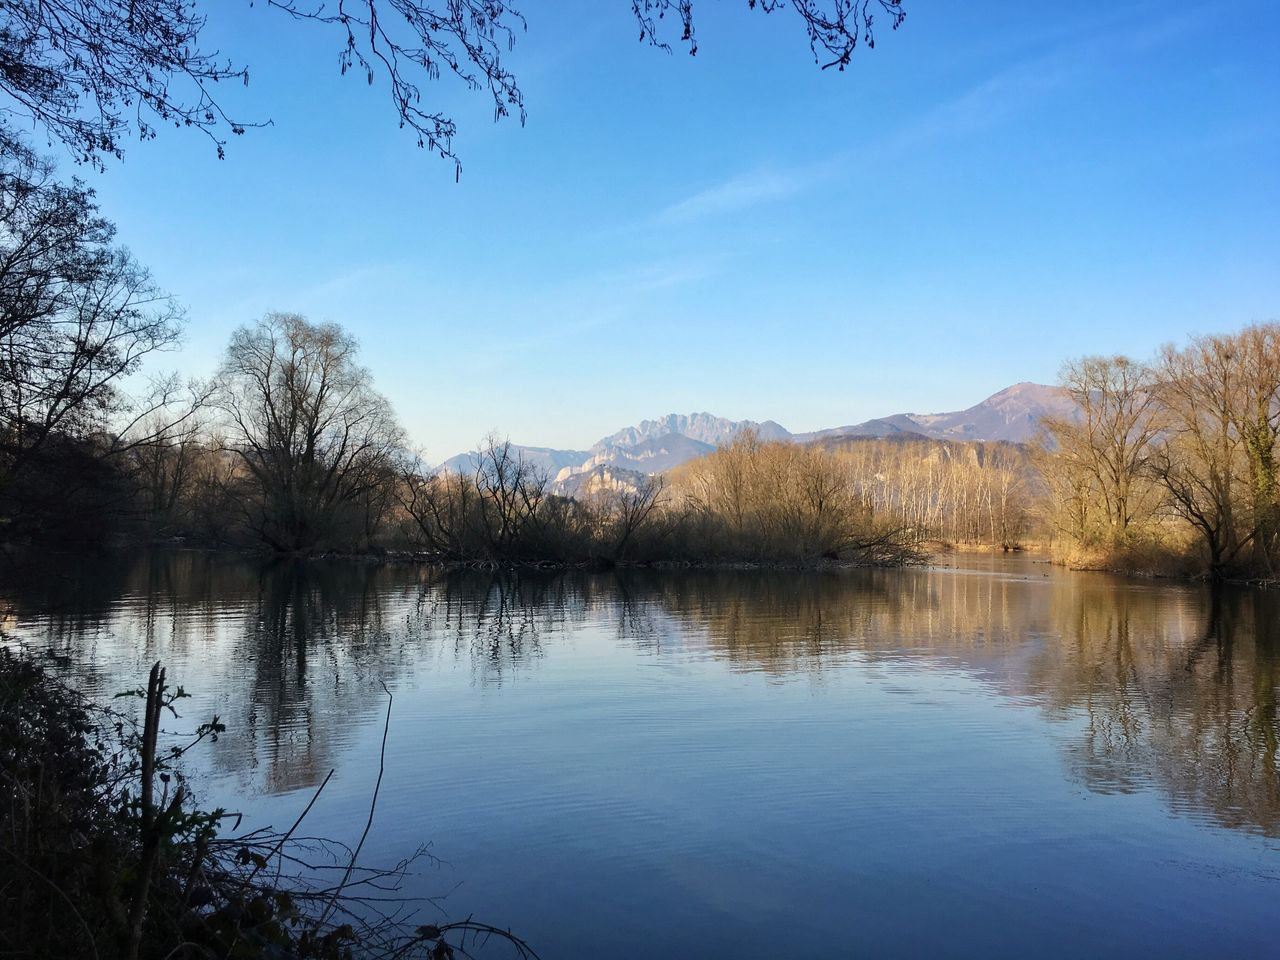 lake, reflection, water, tranquil scene, beauty in nature, tranquility, nature, scenics, mountain, tree, mountain range, outdoors, idyllic, sky, non-urban scene, no people, day, bare tree